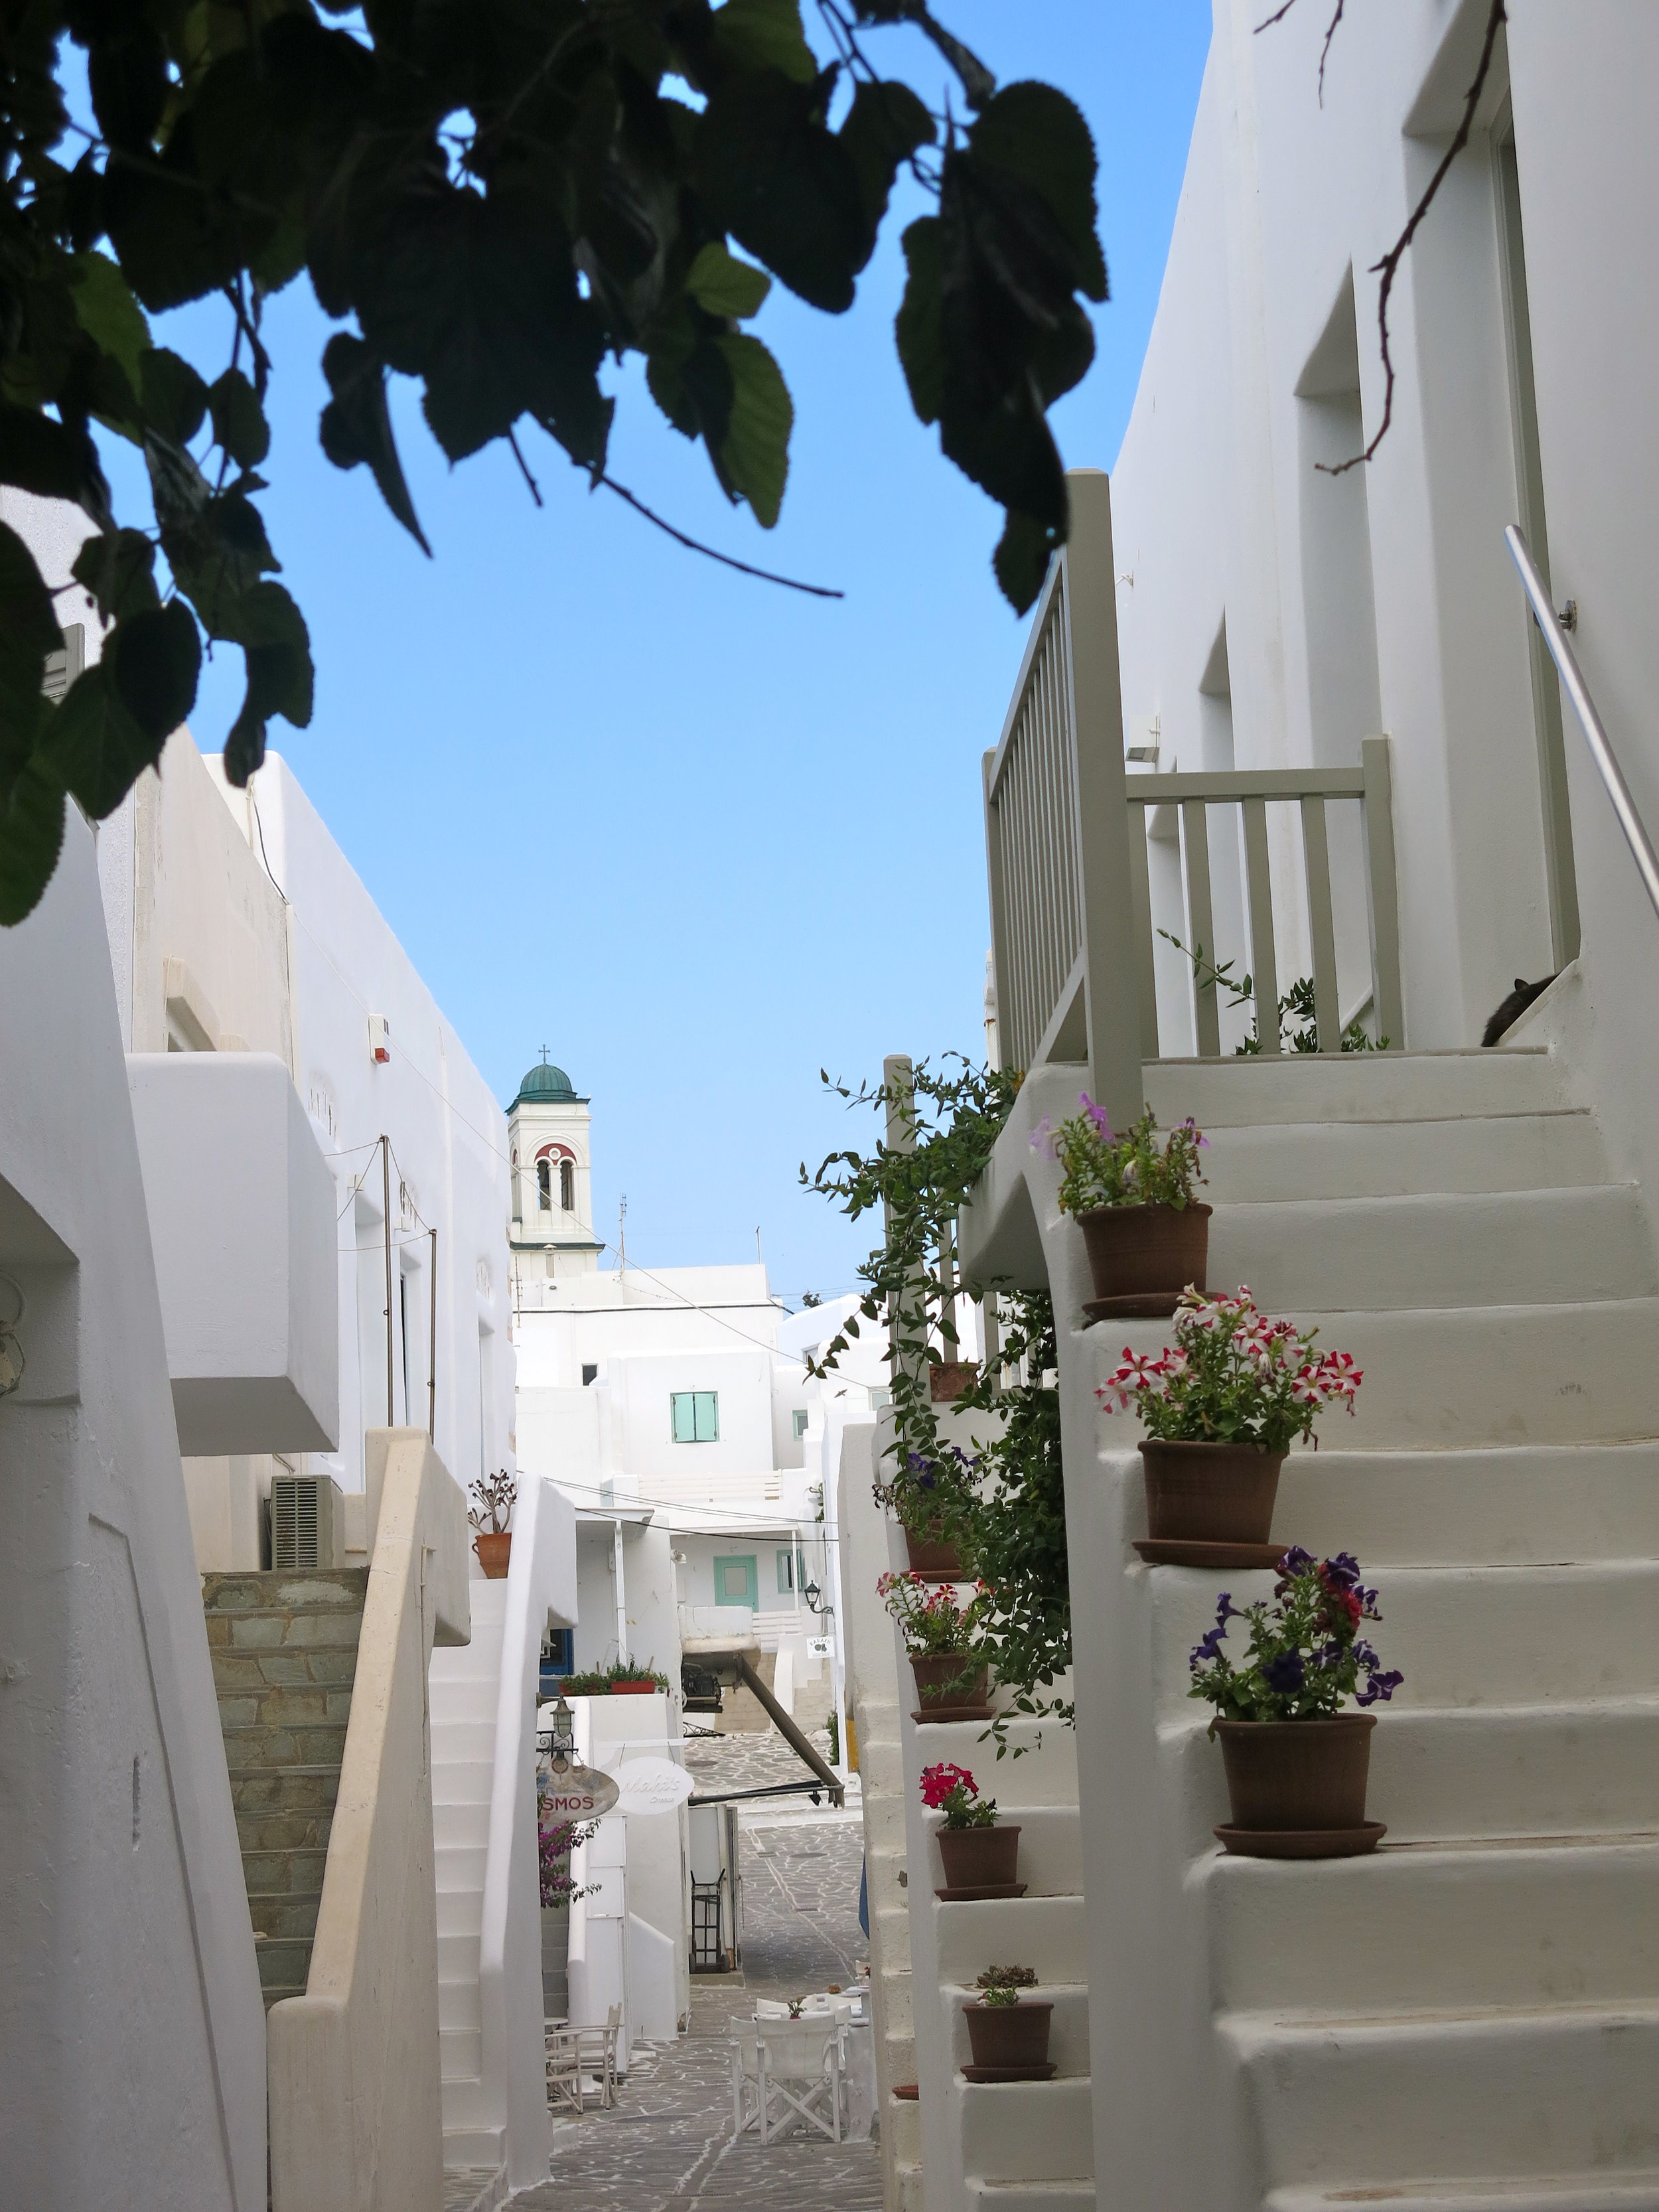 The charming streets of Naoussa near the fishing harbor